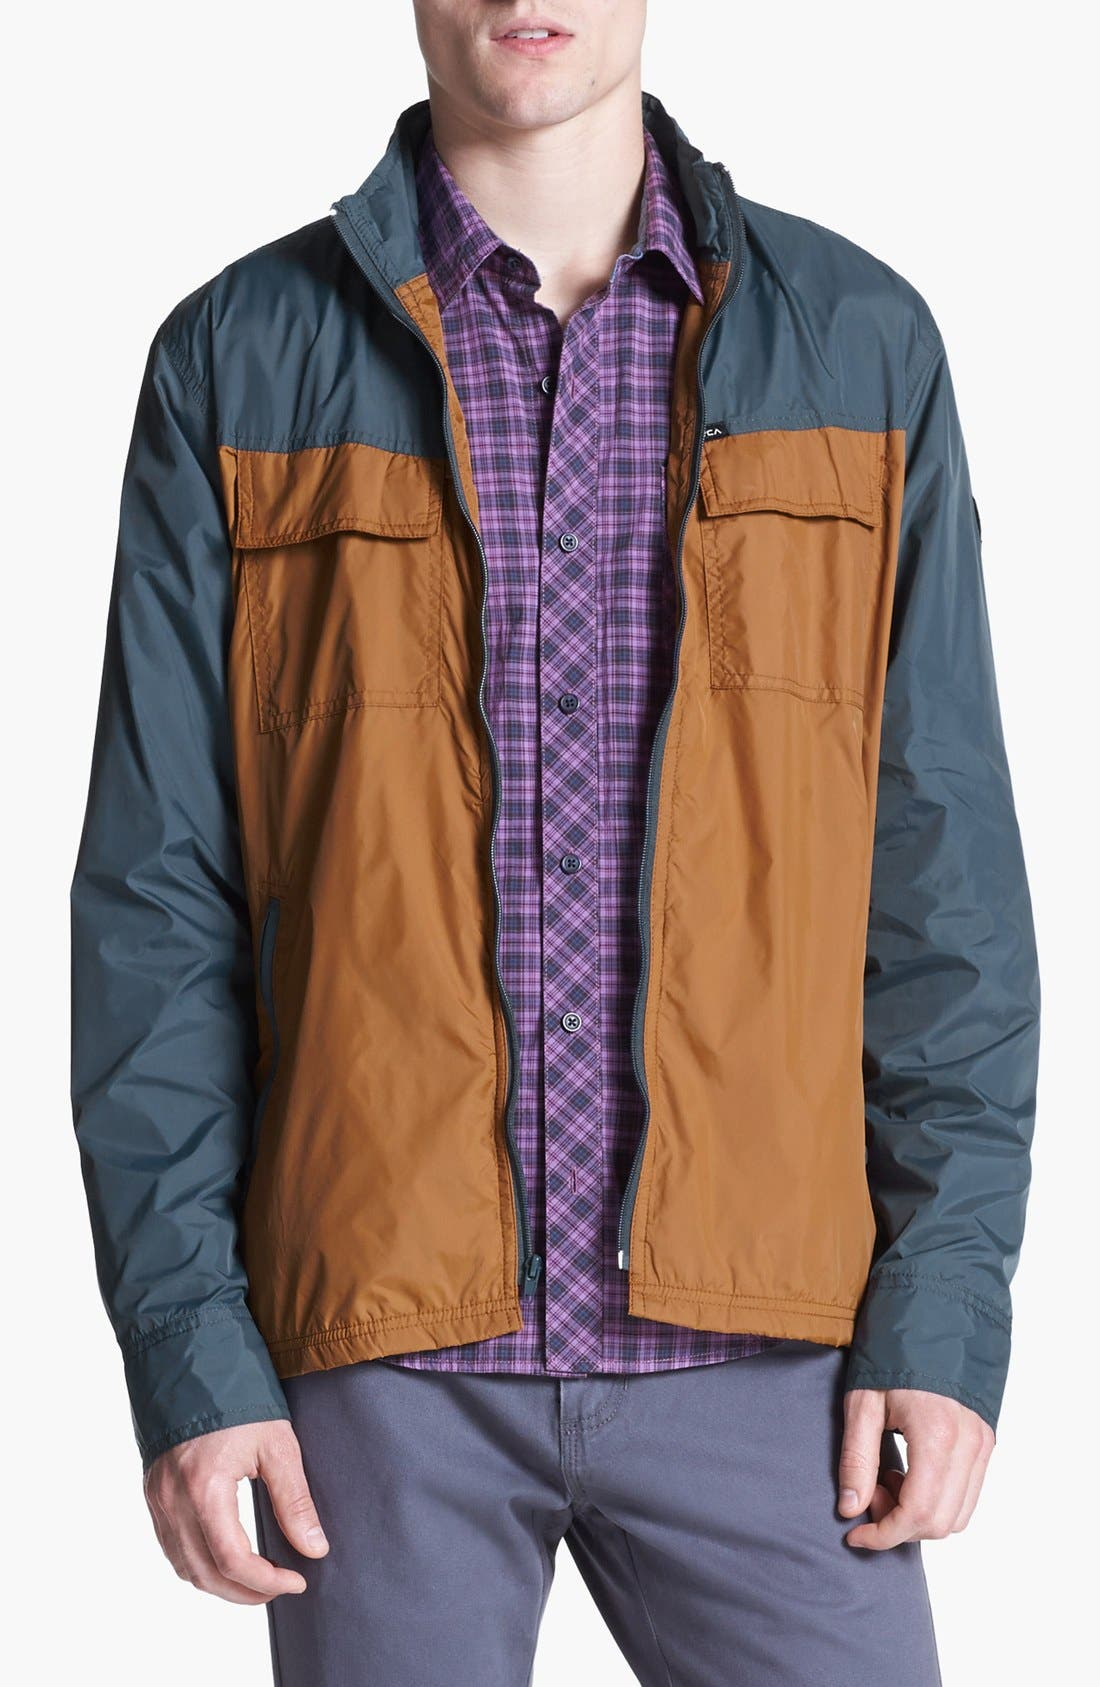 Alternate Image 1 Selected - RVCA 'Bay Blocker' Windbreaker Jacket